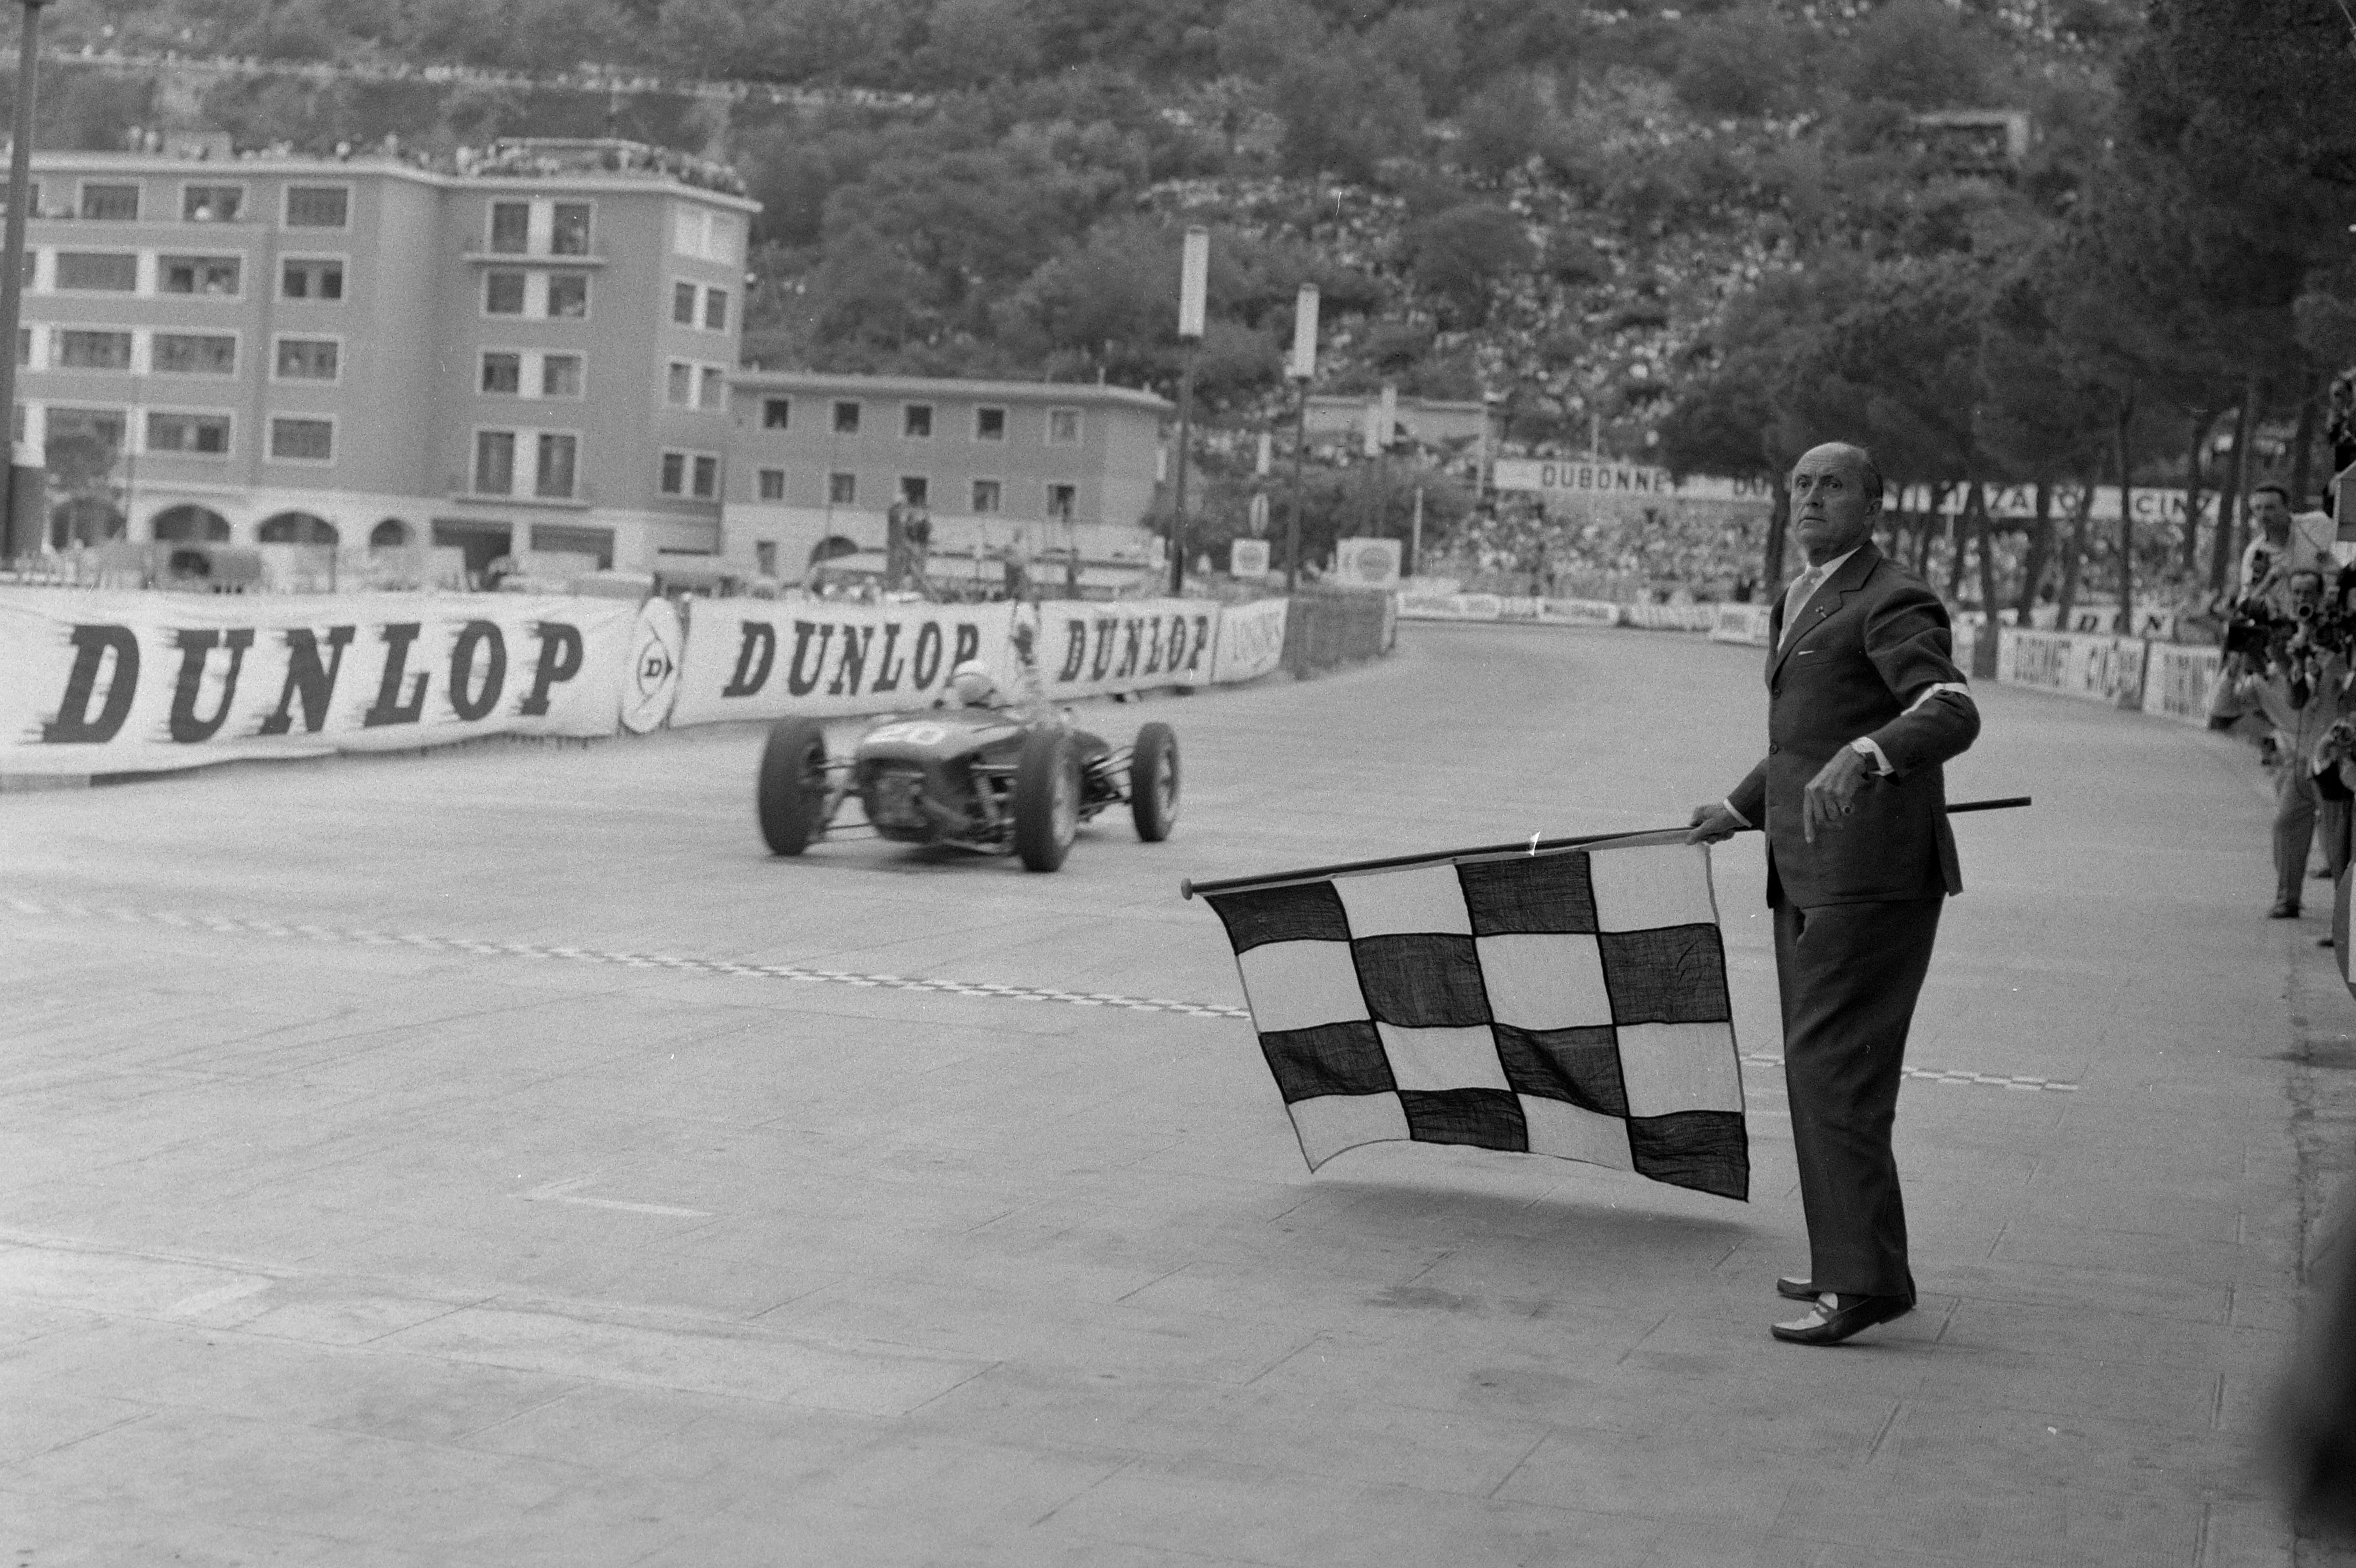 Stirling Moss, 1961 Monaco GP chequered flag